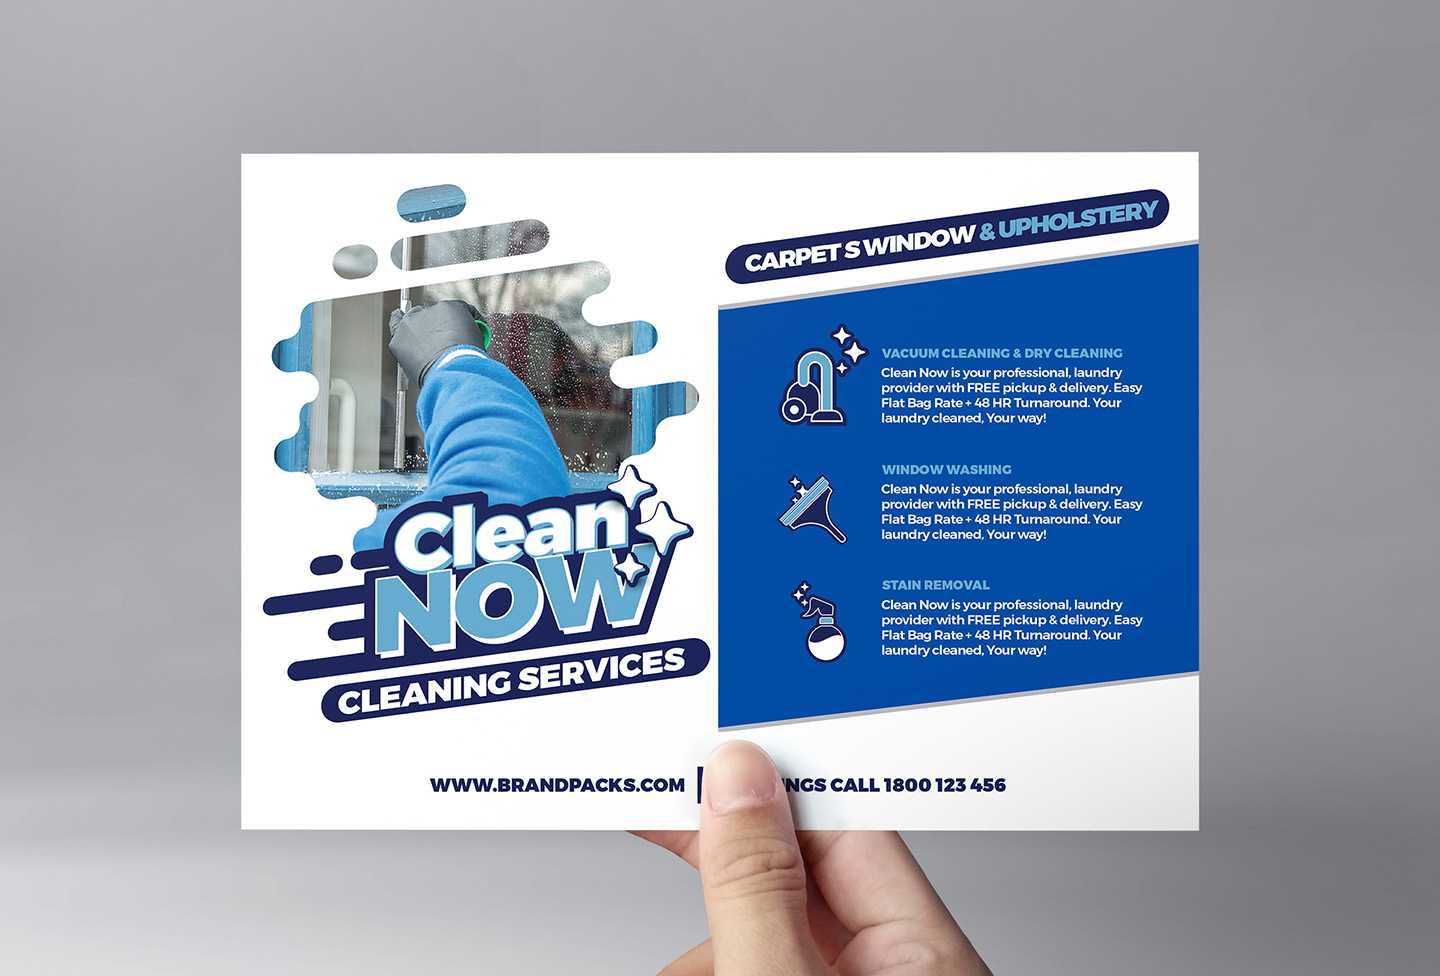 Cleaning Service Flyer Template In Psd, Ai & Vector - Brandpacks Regarding Cleaning Brochure Templates Free